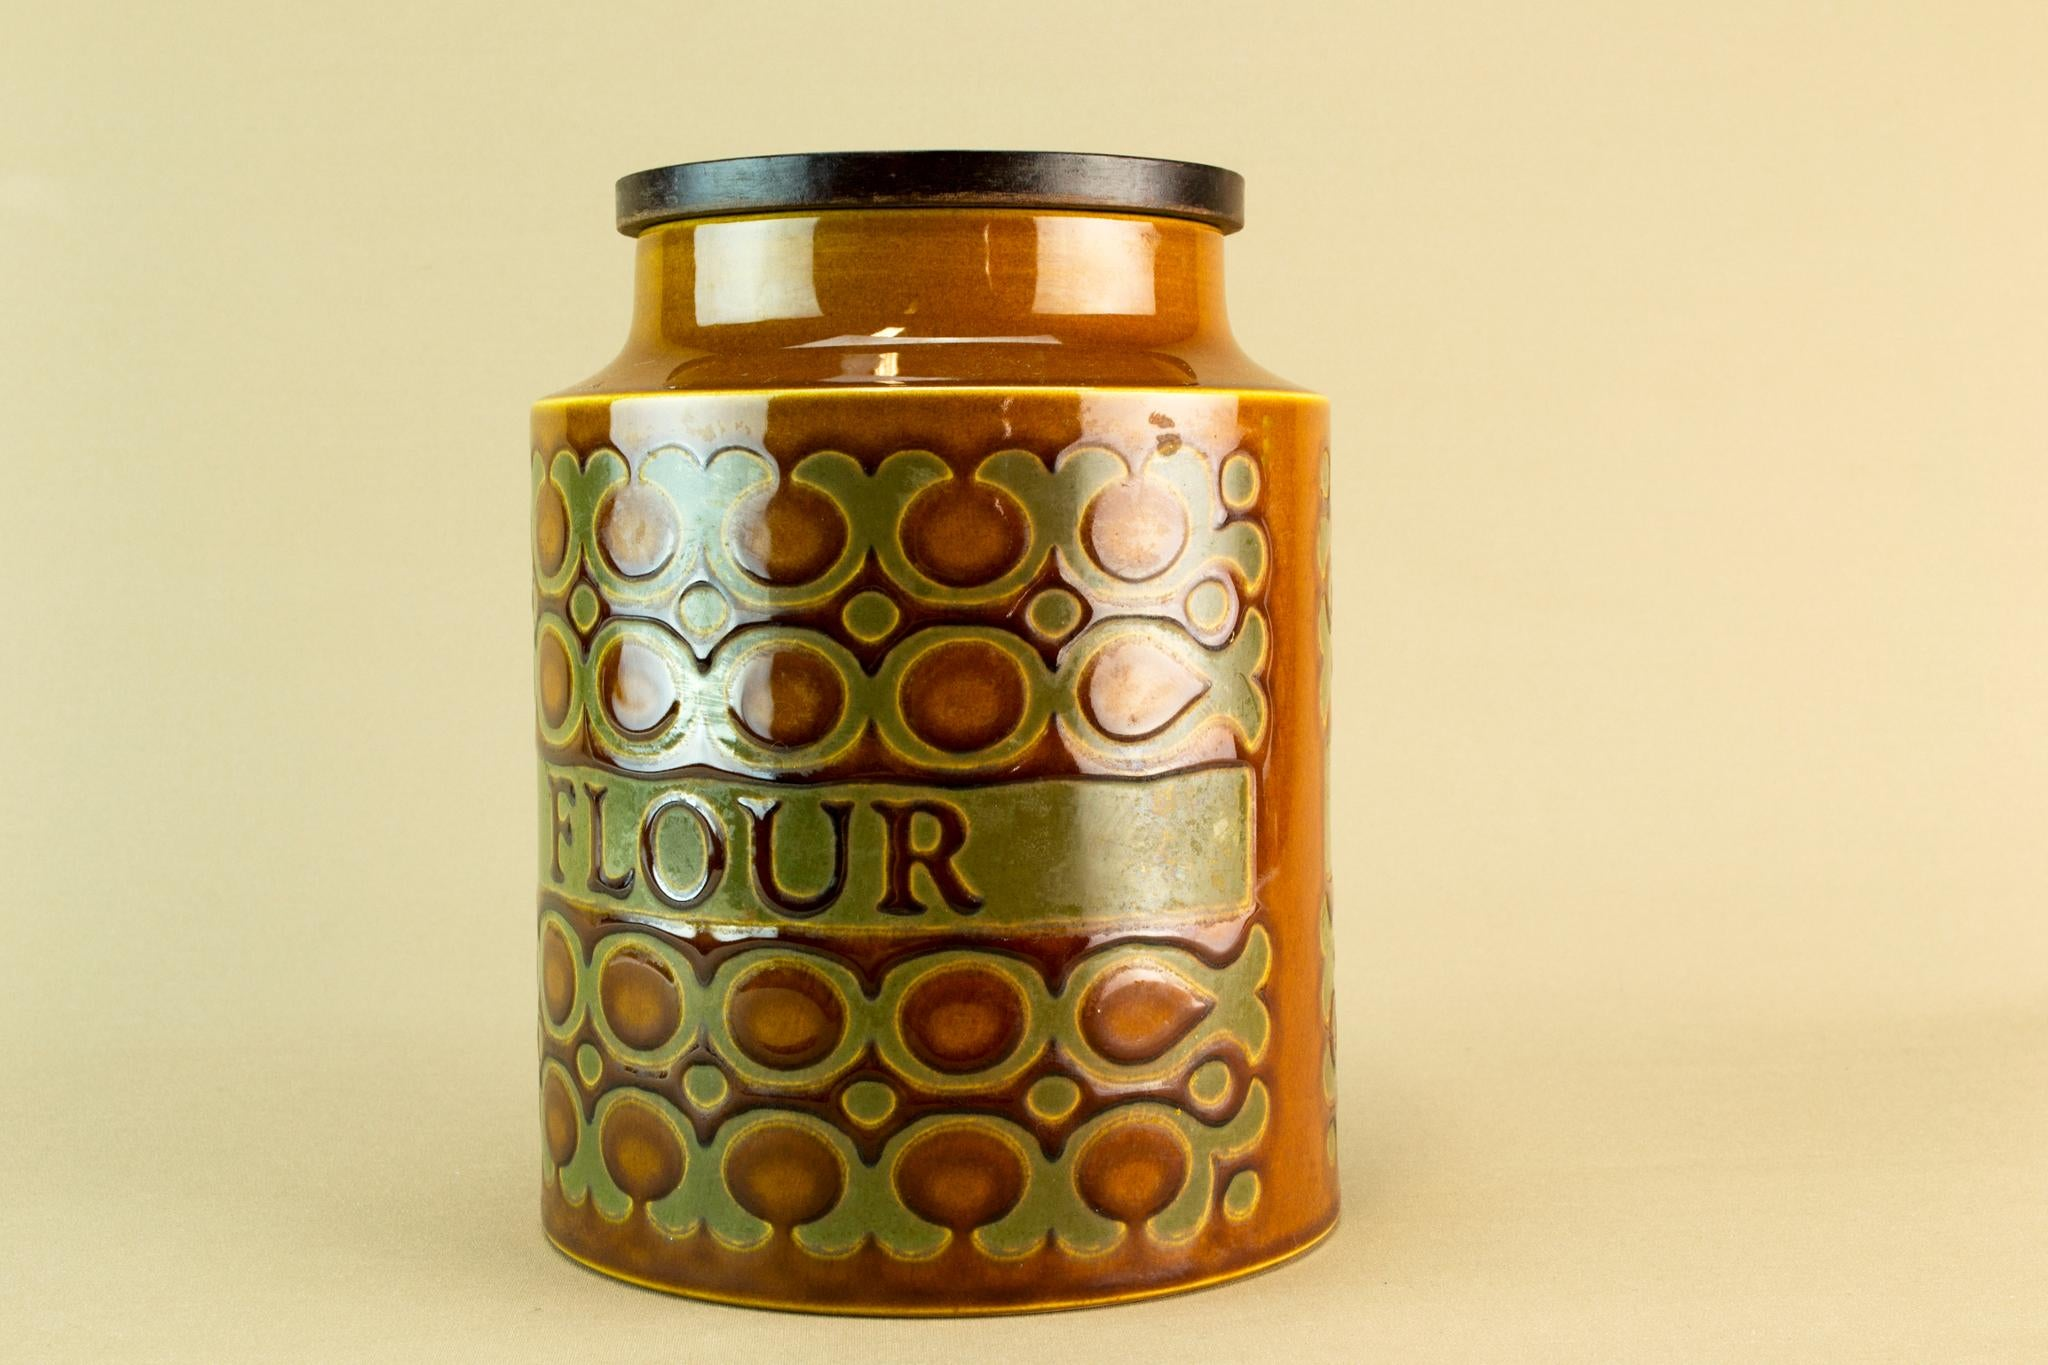 Large flour storage jar, 1970s